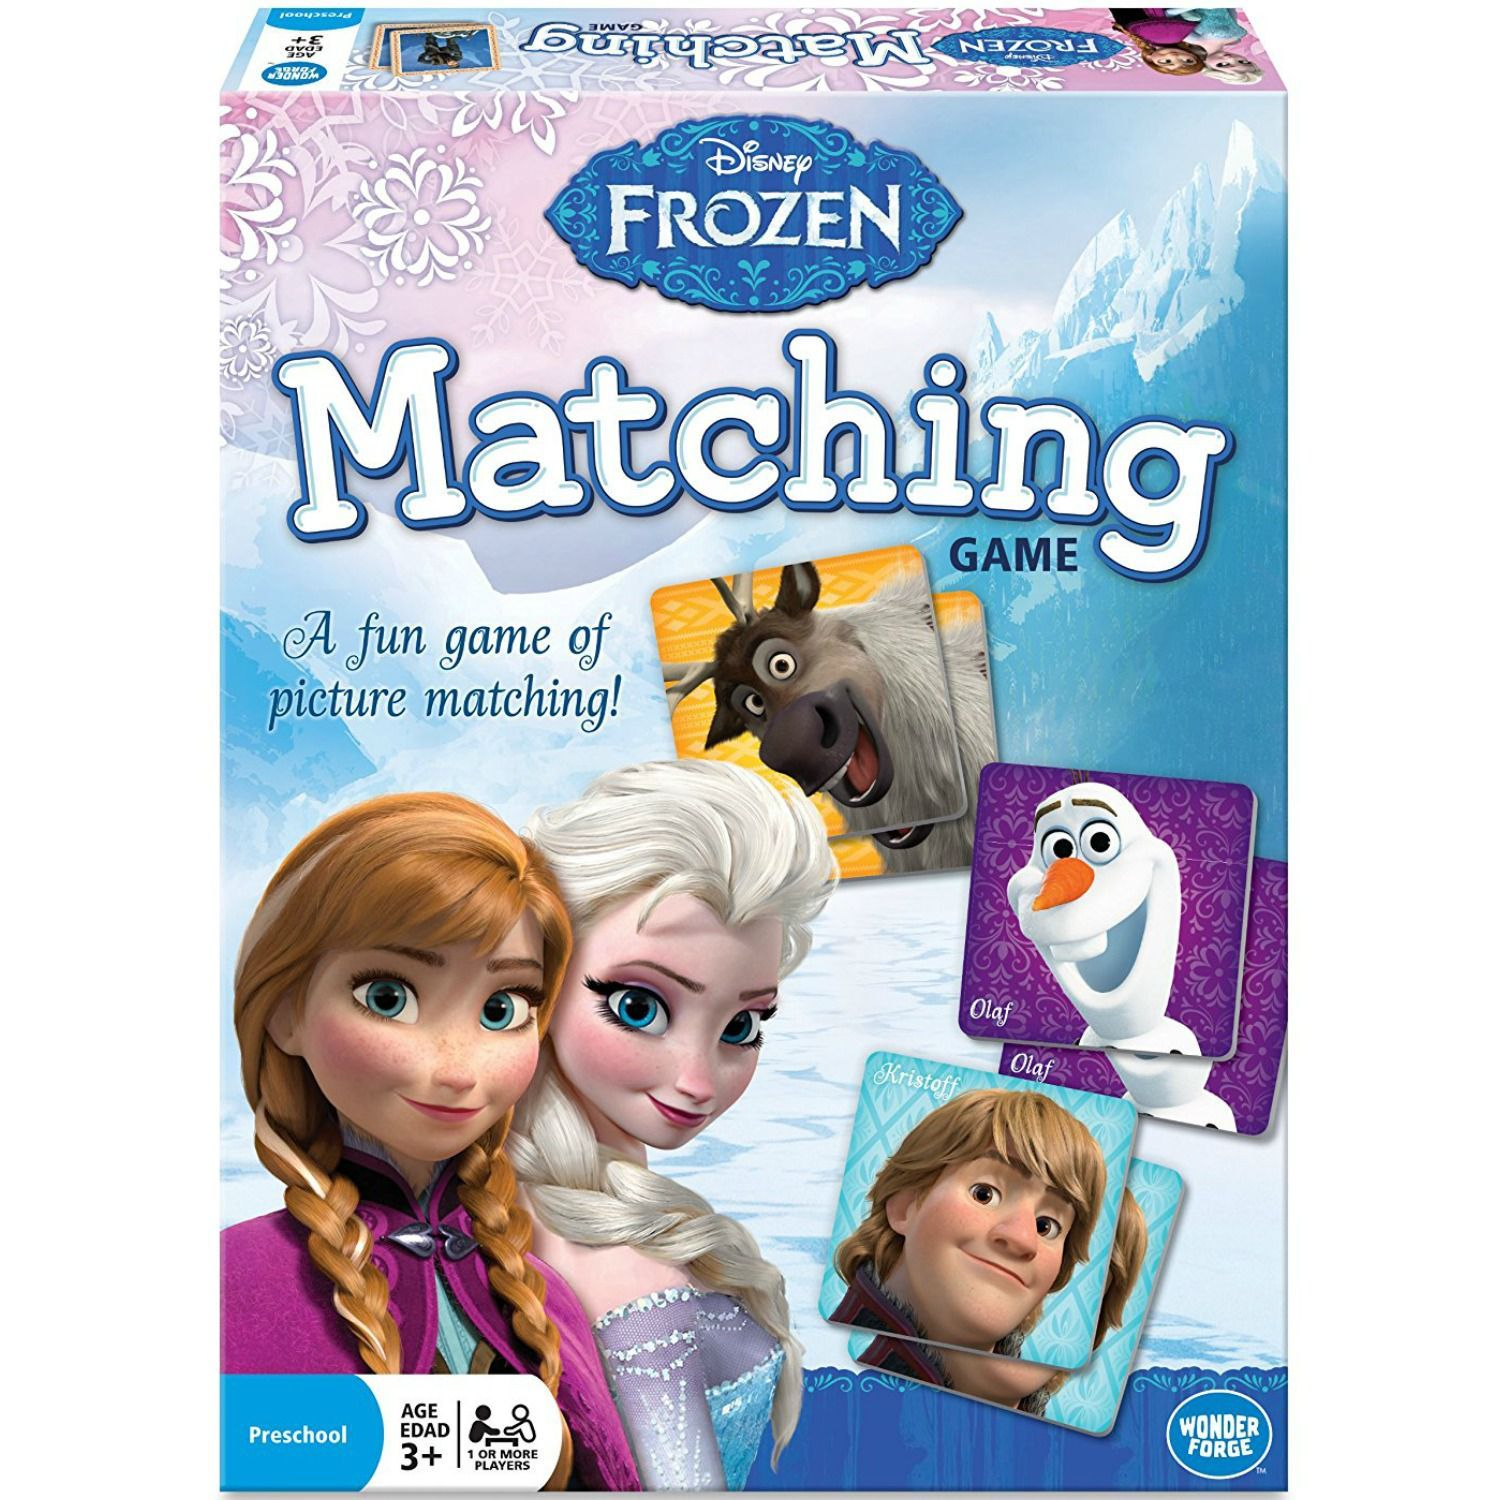 Frozen 2 Is Coming 15 Toys That Every Elsa Obsessed Kid Wants Disney Frozen Winter Toy Matching Games